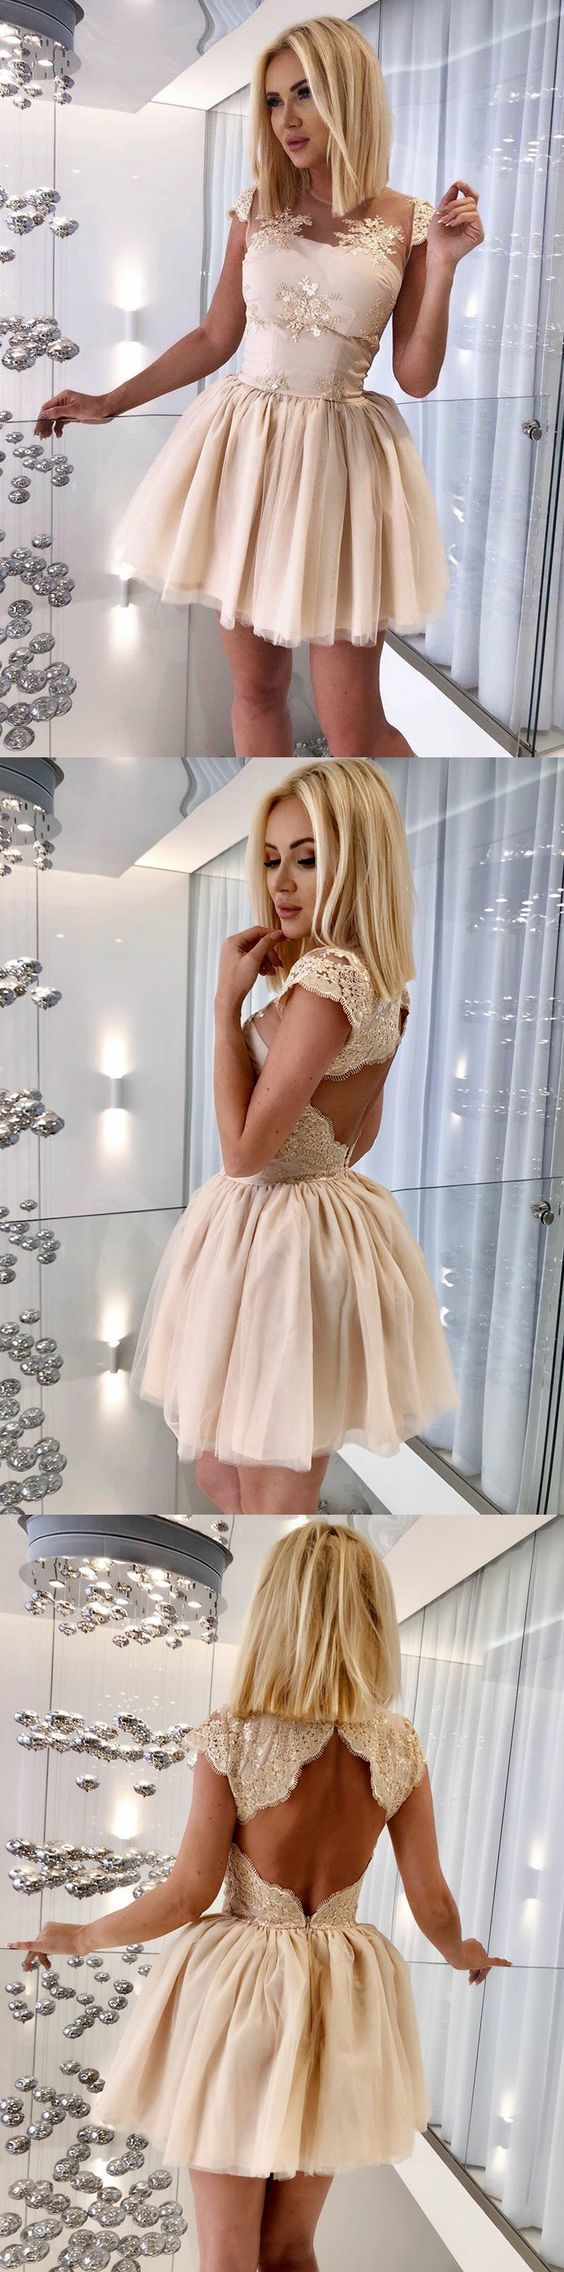 A-Line Jewel Cap Sleeves Open Back Short Champagne Homecoming Dress with